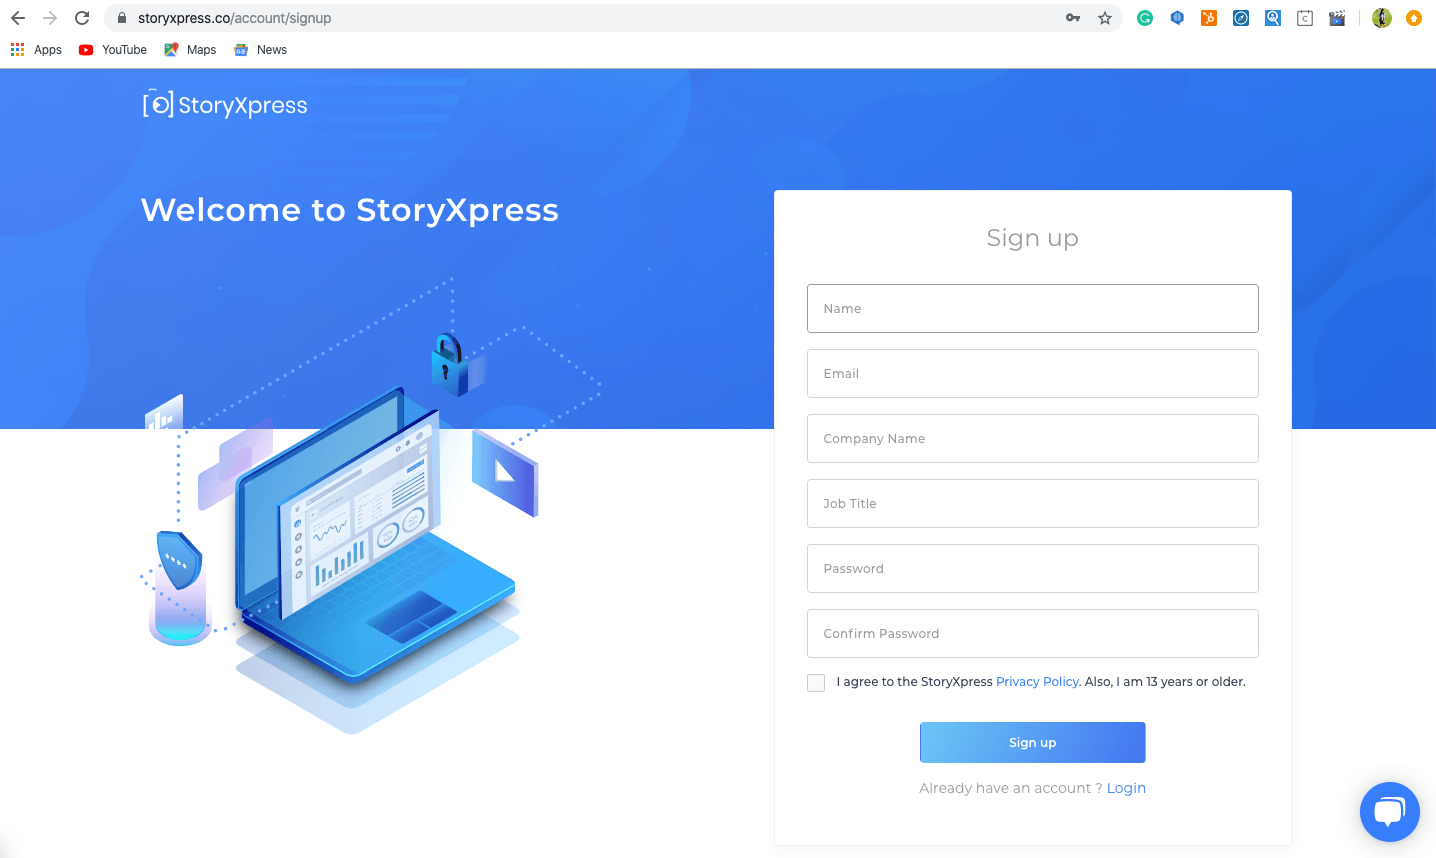 StoryXpress Sign Up Page